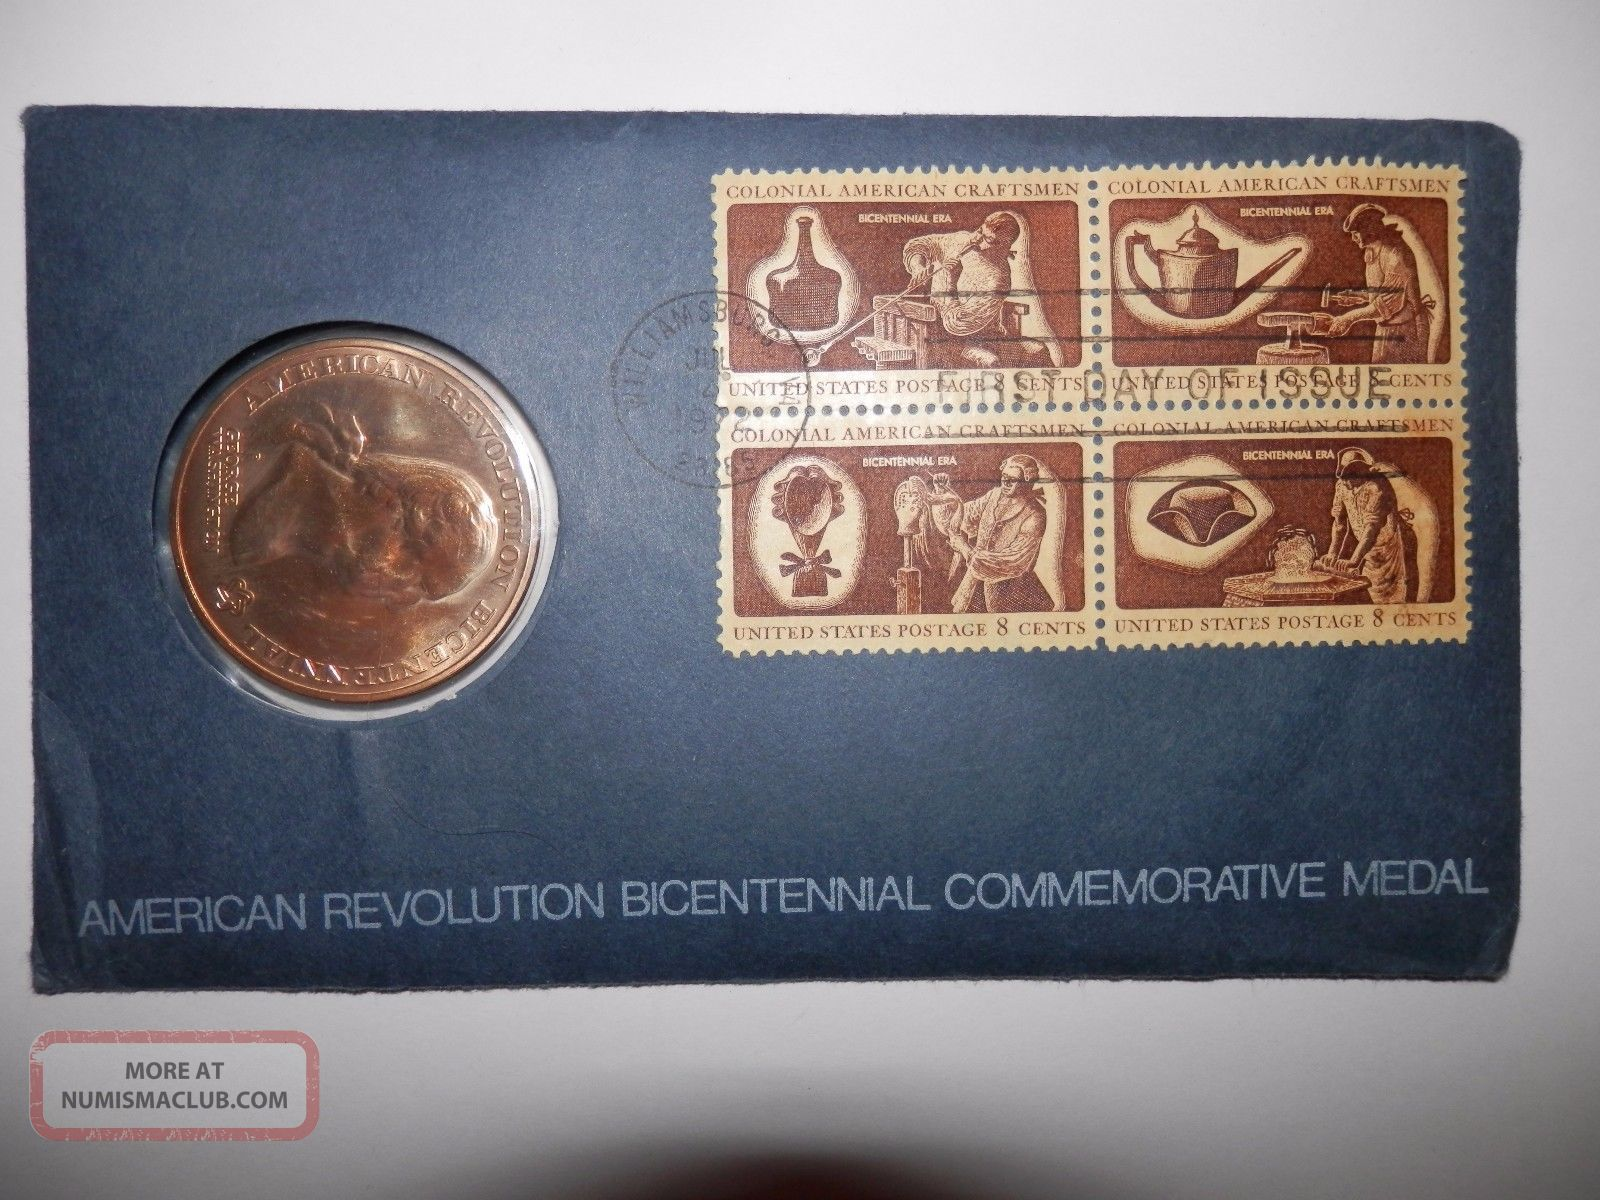 American Revolution Bicentennial Commemorative Medal 1972 First Day Issue July 4 Exonumia photo